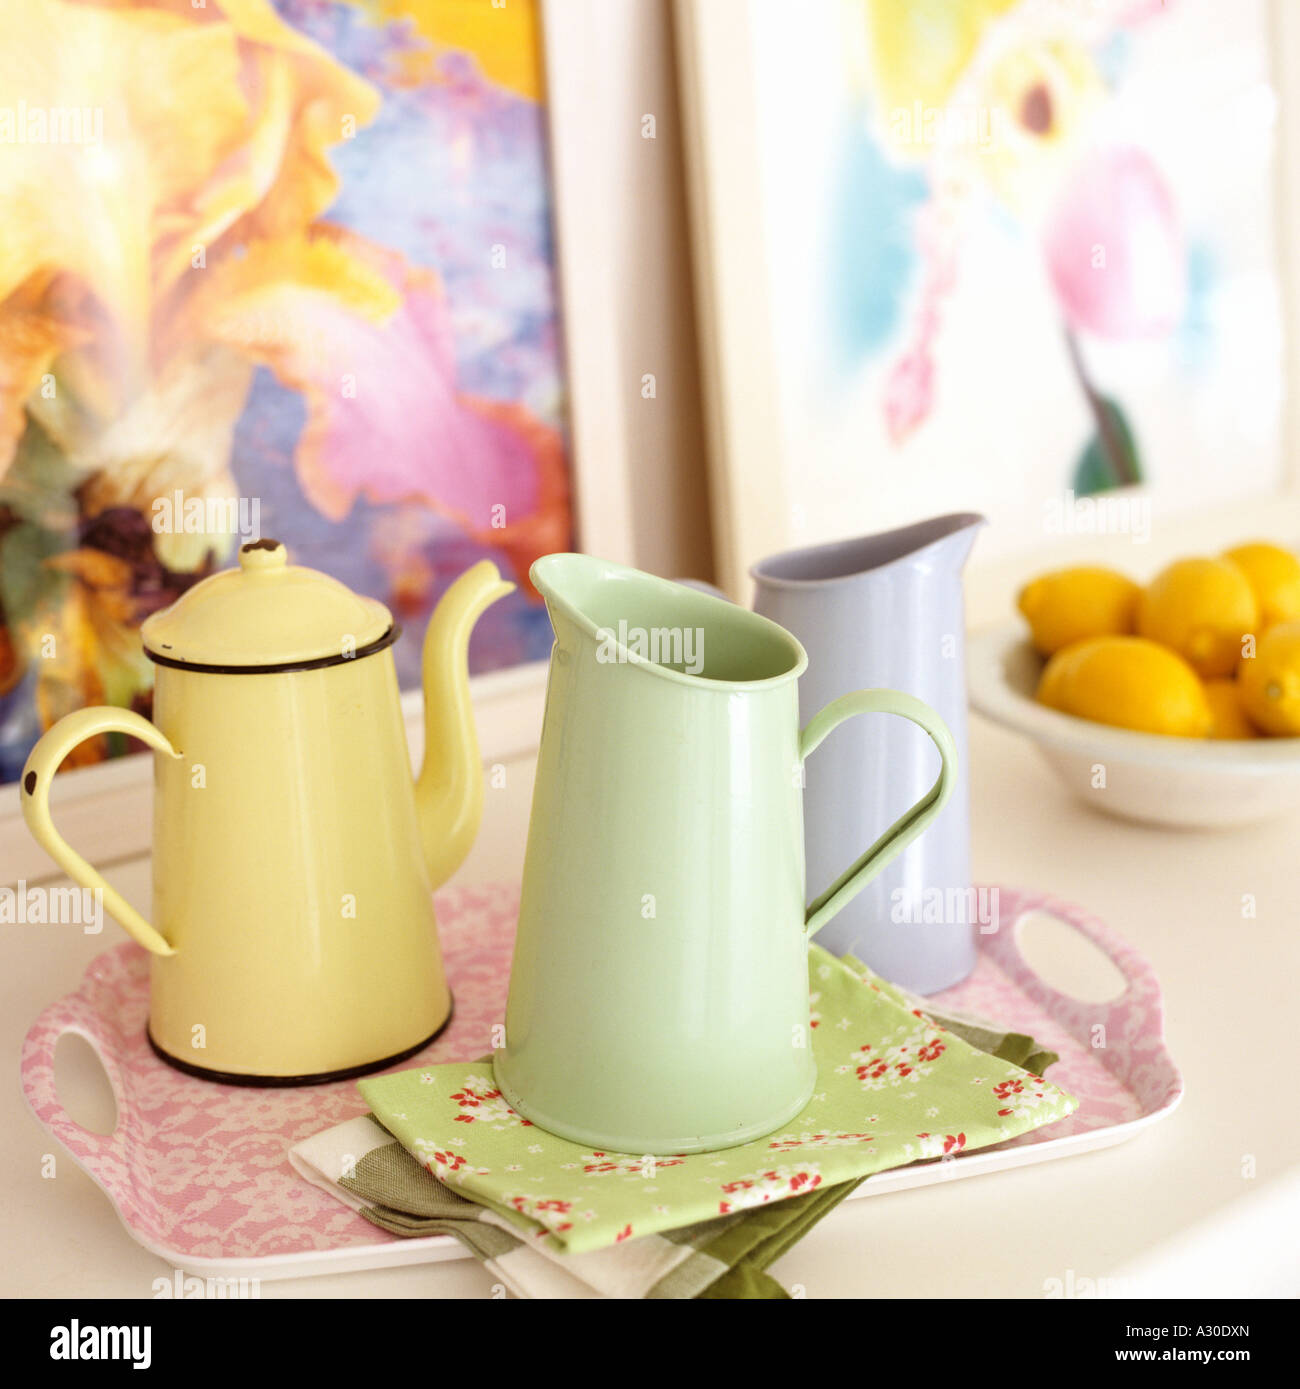 Display of coloured retro enamel and ceramics jugs on floral napkins - Stock Image